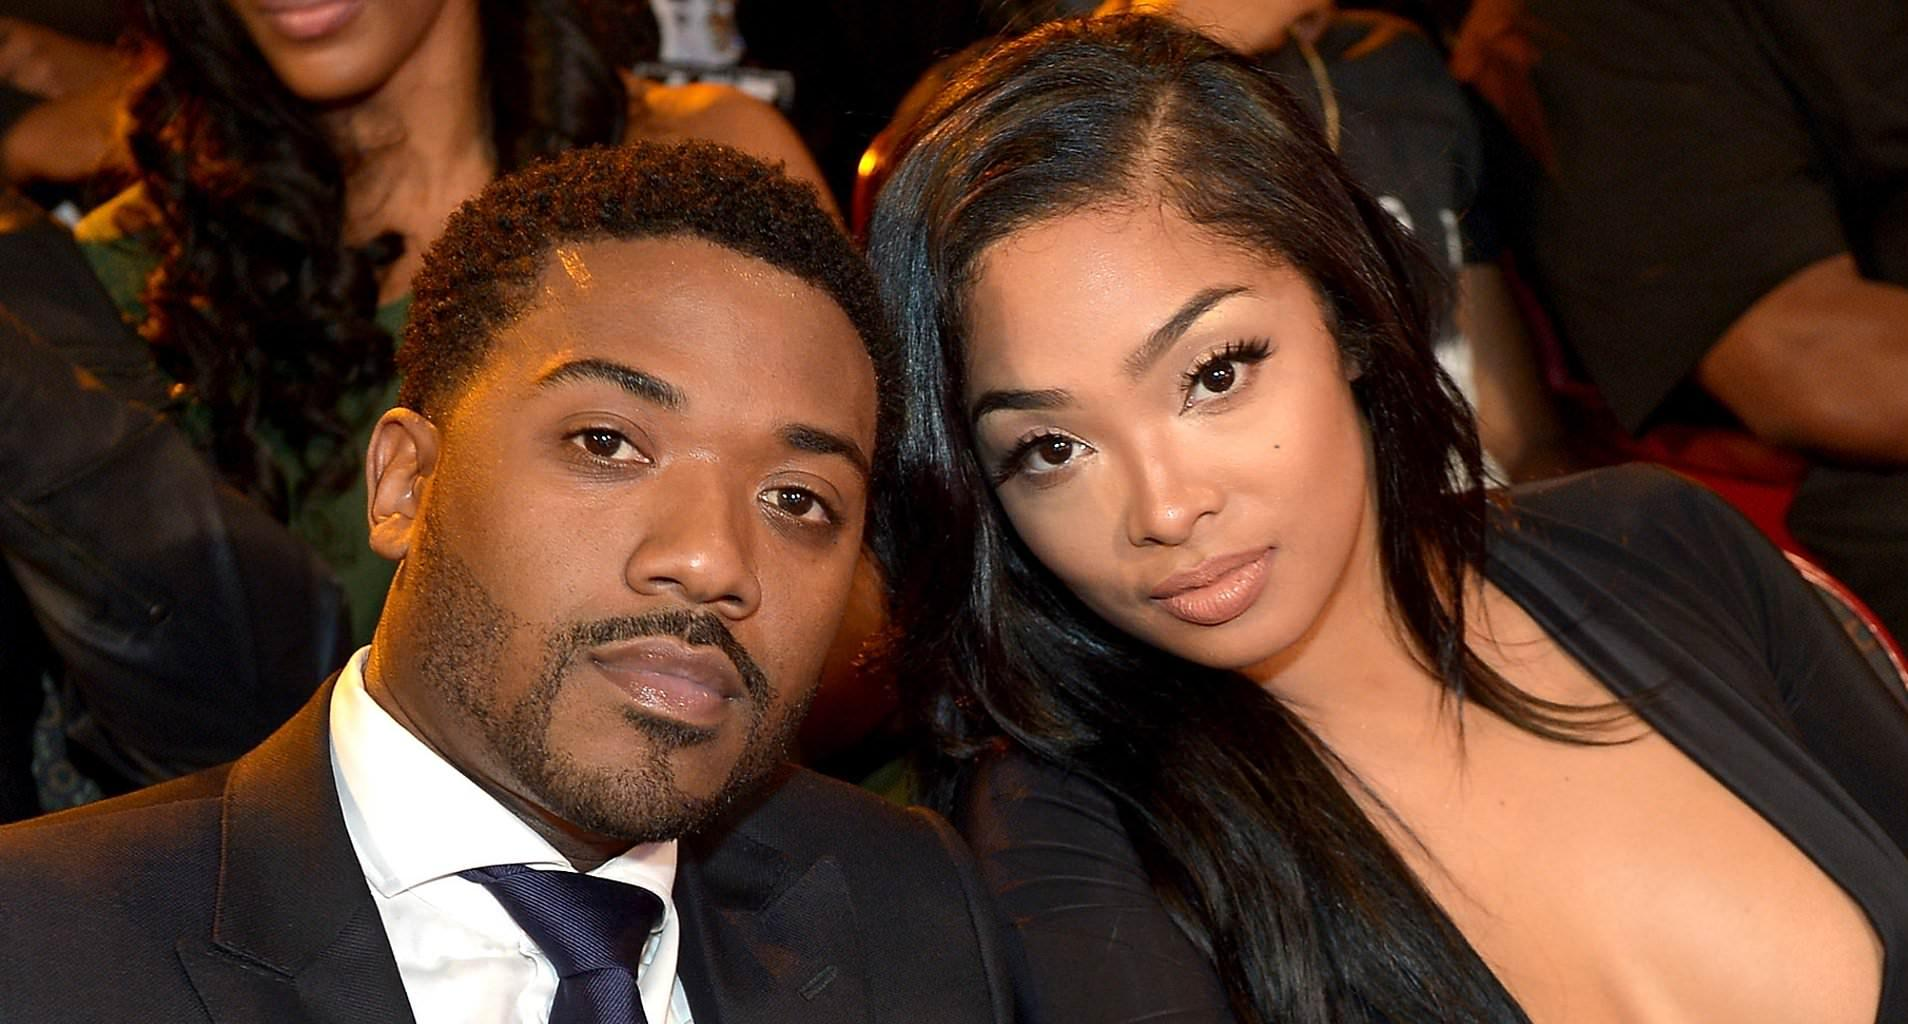 Princess Love Addresses The Pool Episode Featuring Ray J - See The Clip